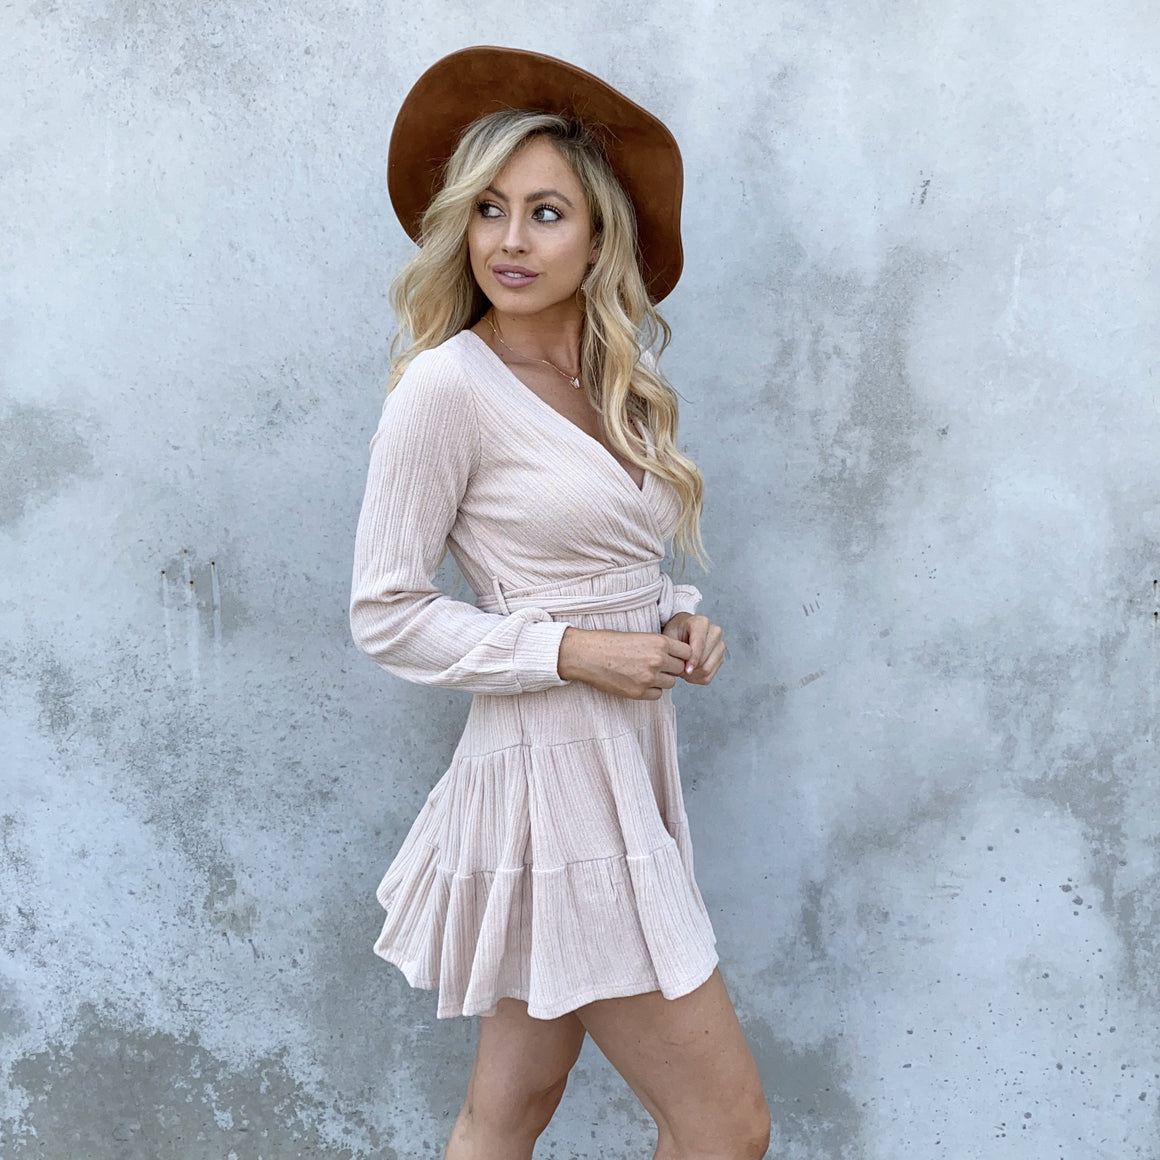 Honey Love Tan Knit Long Sleeve Sweater Dress - Dainty Hooligan